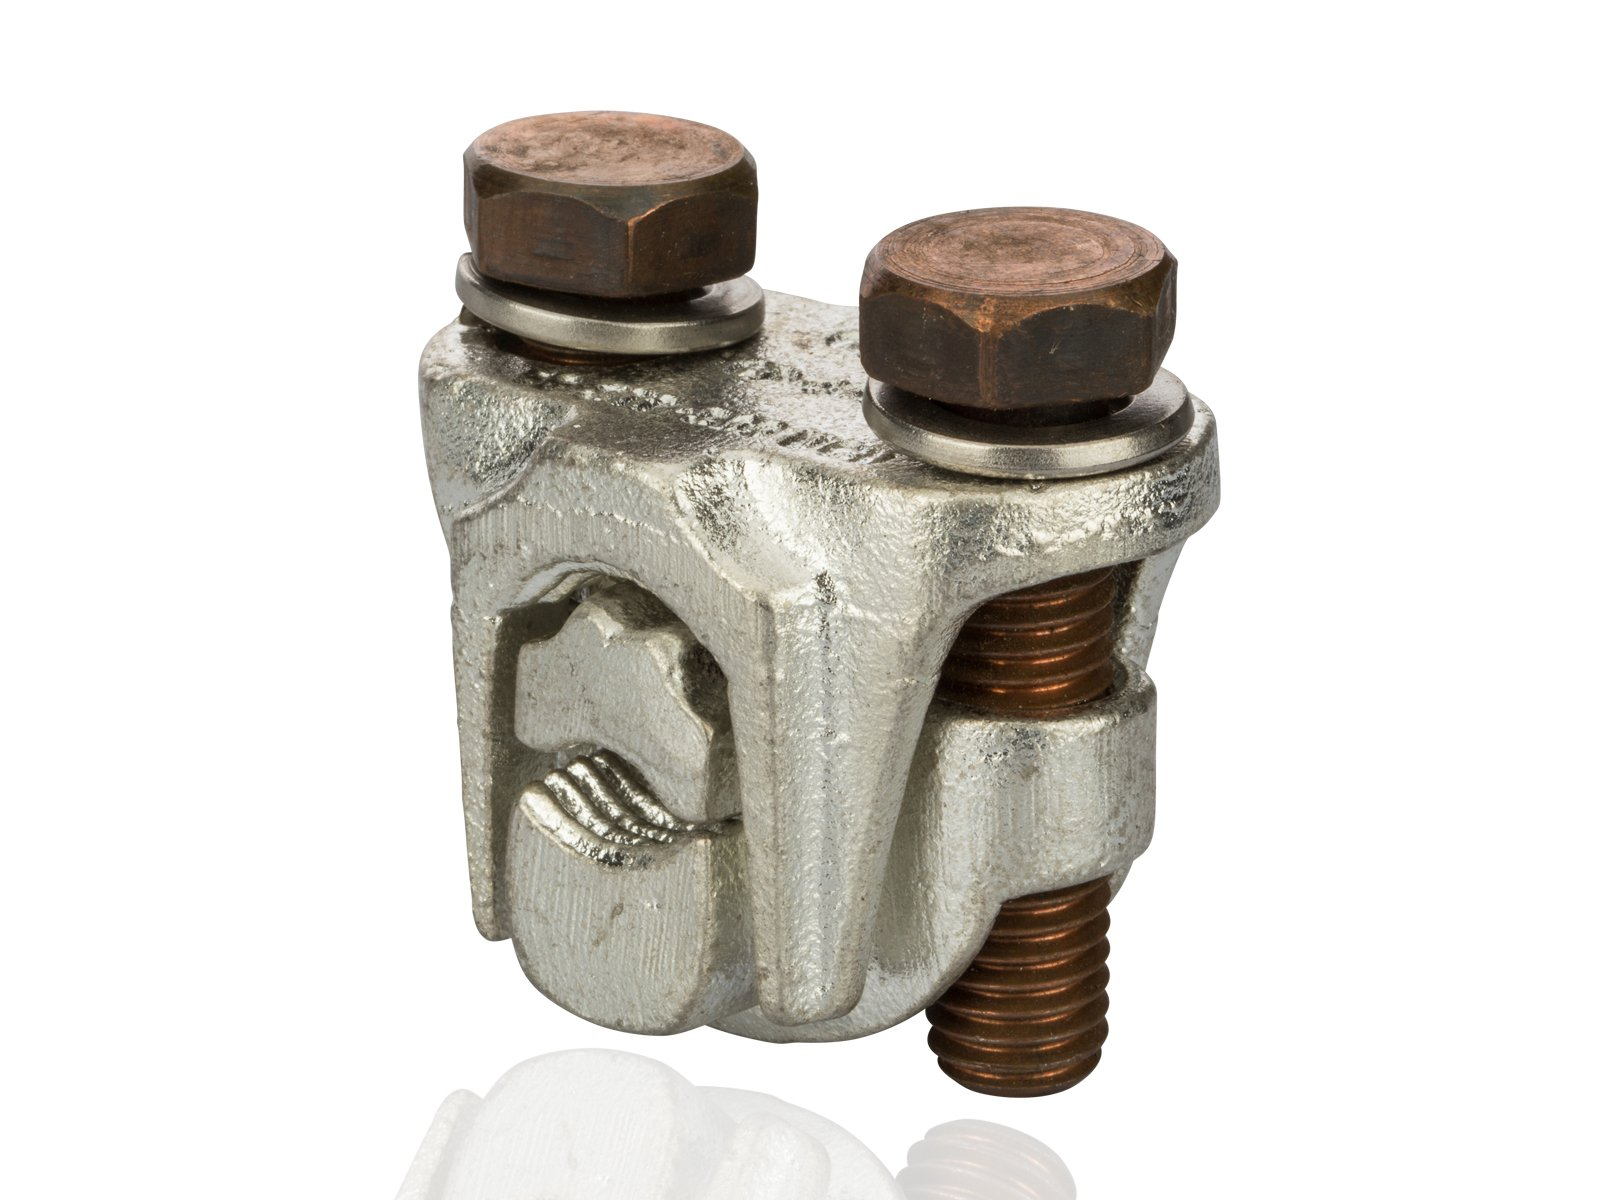 Tap Connector - Tap Connector - Two-Bolt Bronze-Plated for Aluminum, Copper and Steel, 500 MCM-350 MCM Main Wire Range, 500 MCM-4 sol Tap Wire Range